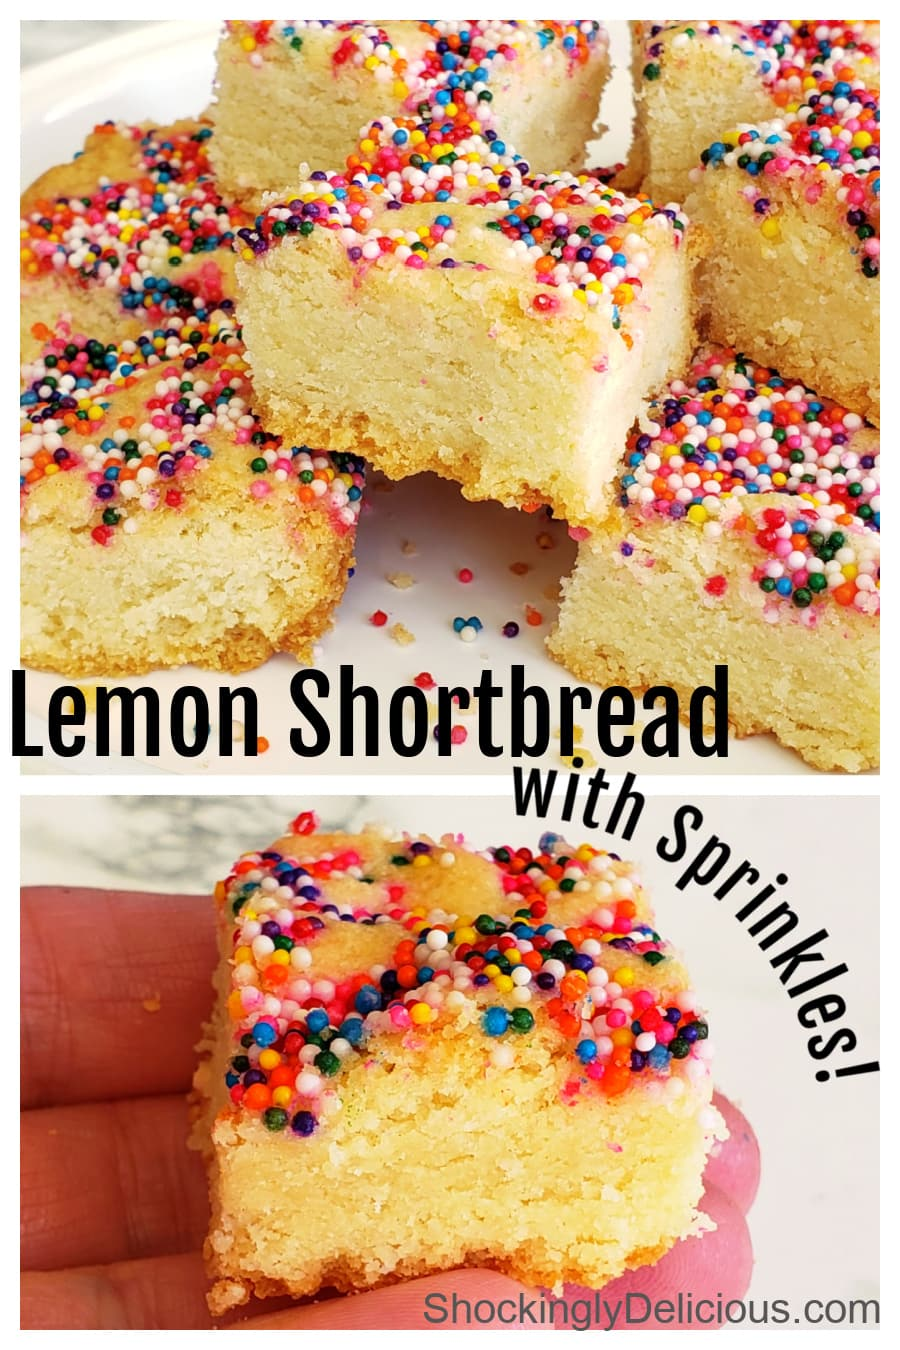 Photo collage of Lemon Shortbread with Sprinkles on ShockinglyDelicious.com